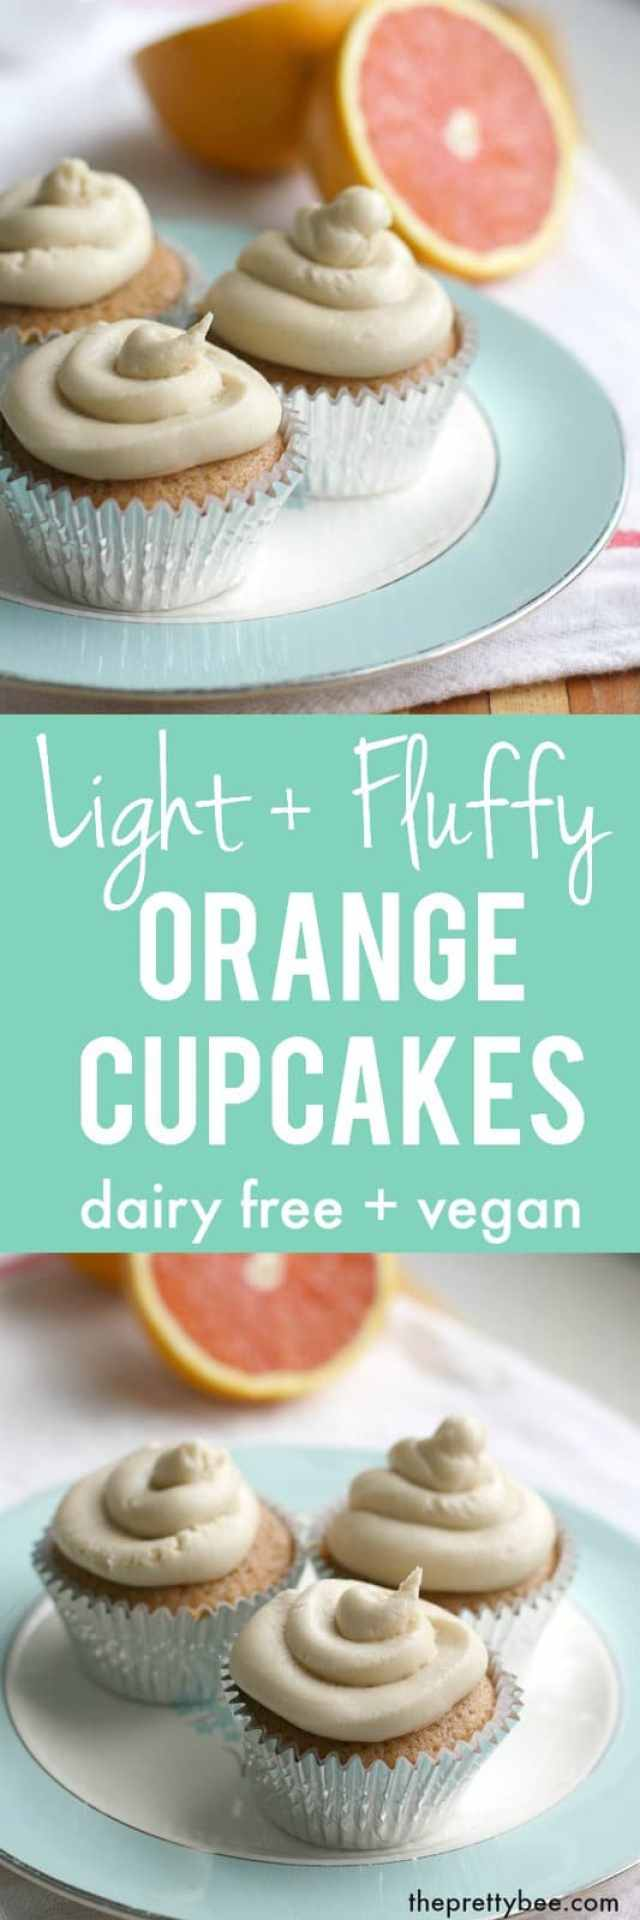 Light and fluffy vegan orange cupcakes are delicious and easy to make!